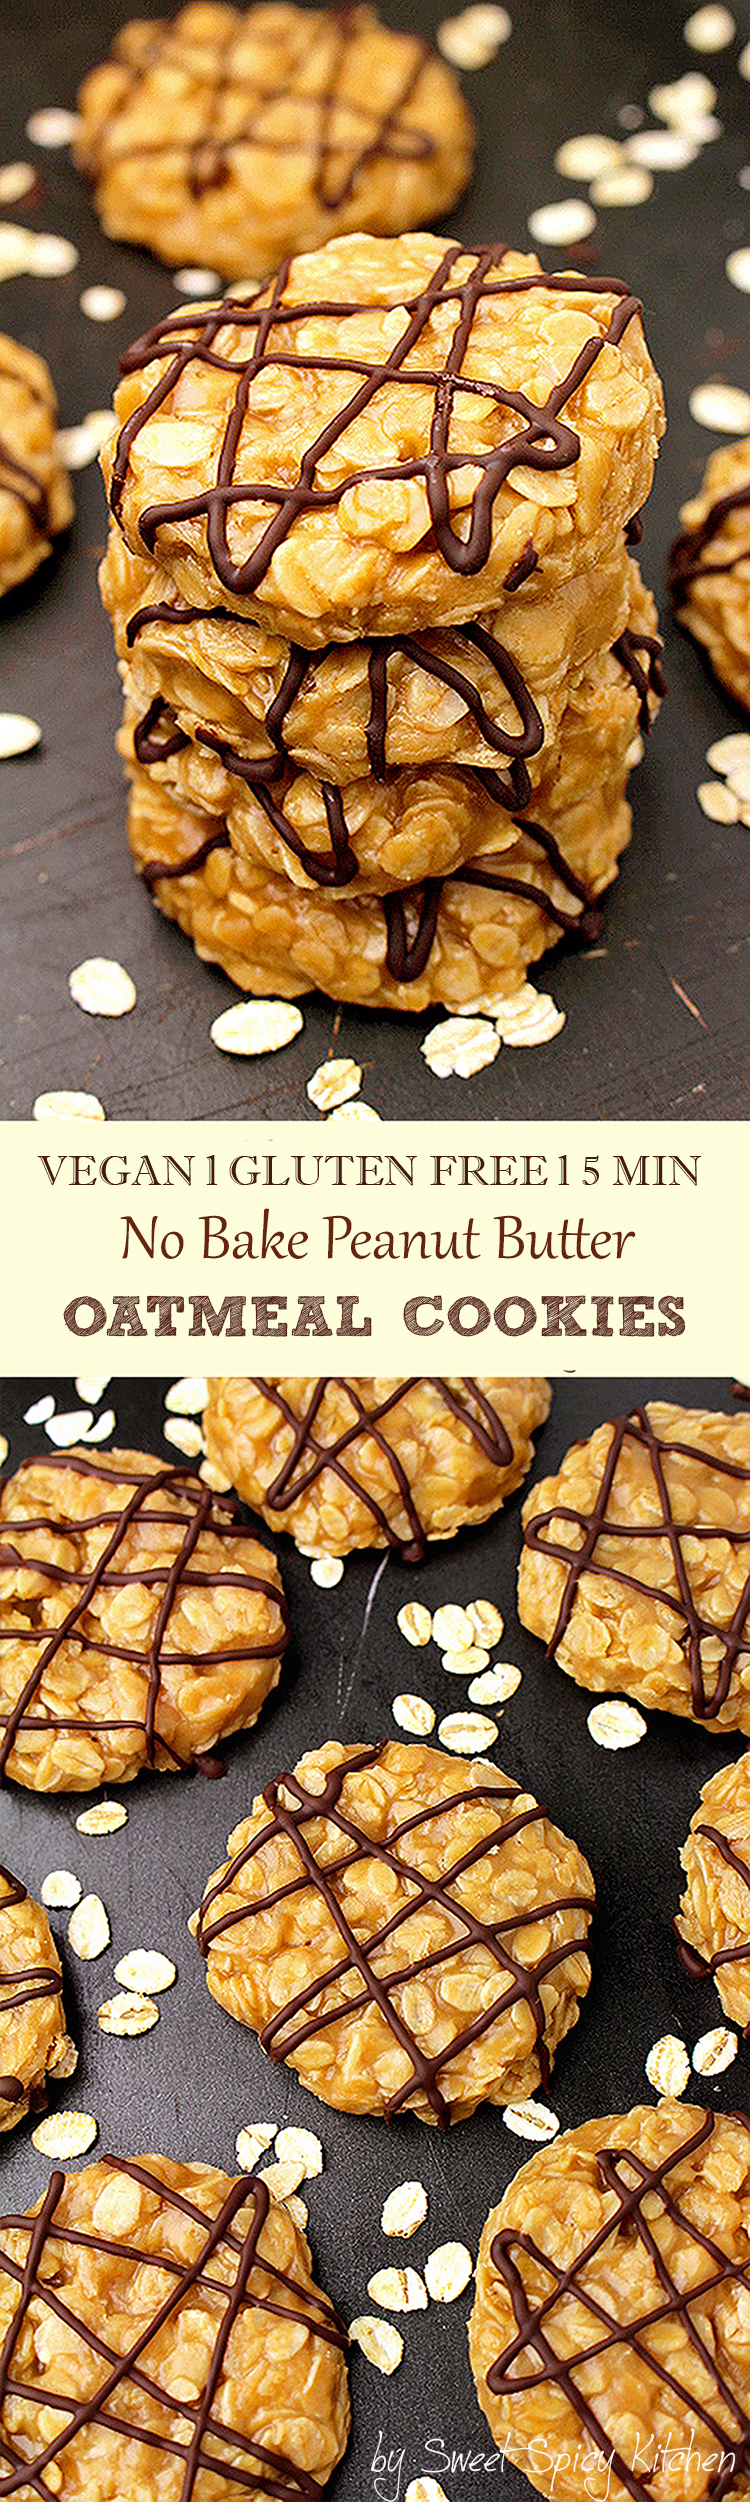 No Bake Vegan Peanut Butter Oatmeal Cookies - delicious healthy cookies made of gluten free oat and peanut butter, enriched with coconut oil and coconut milk.